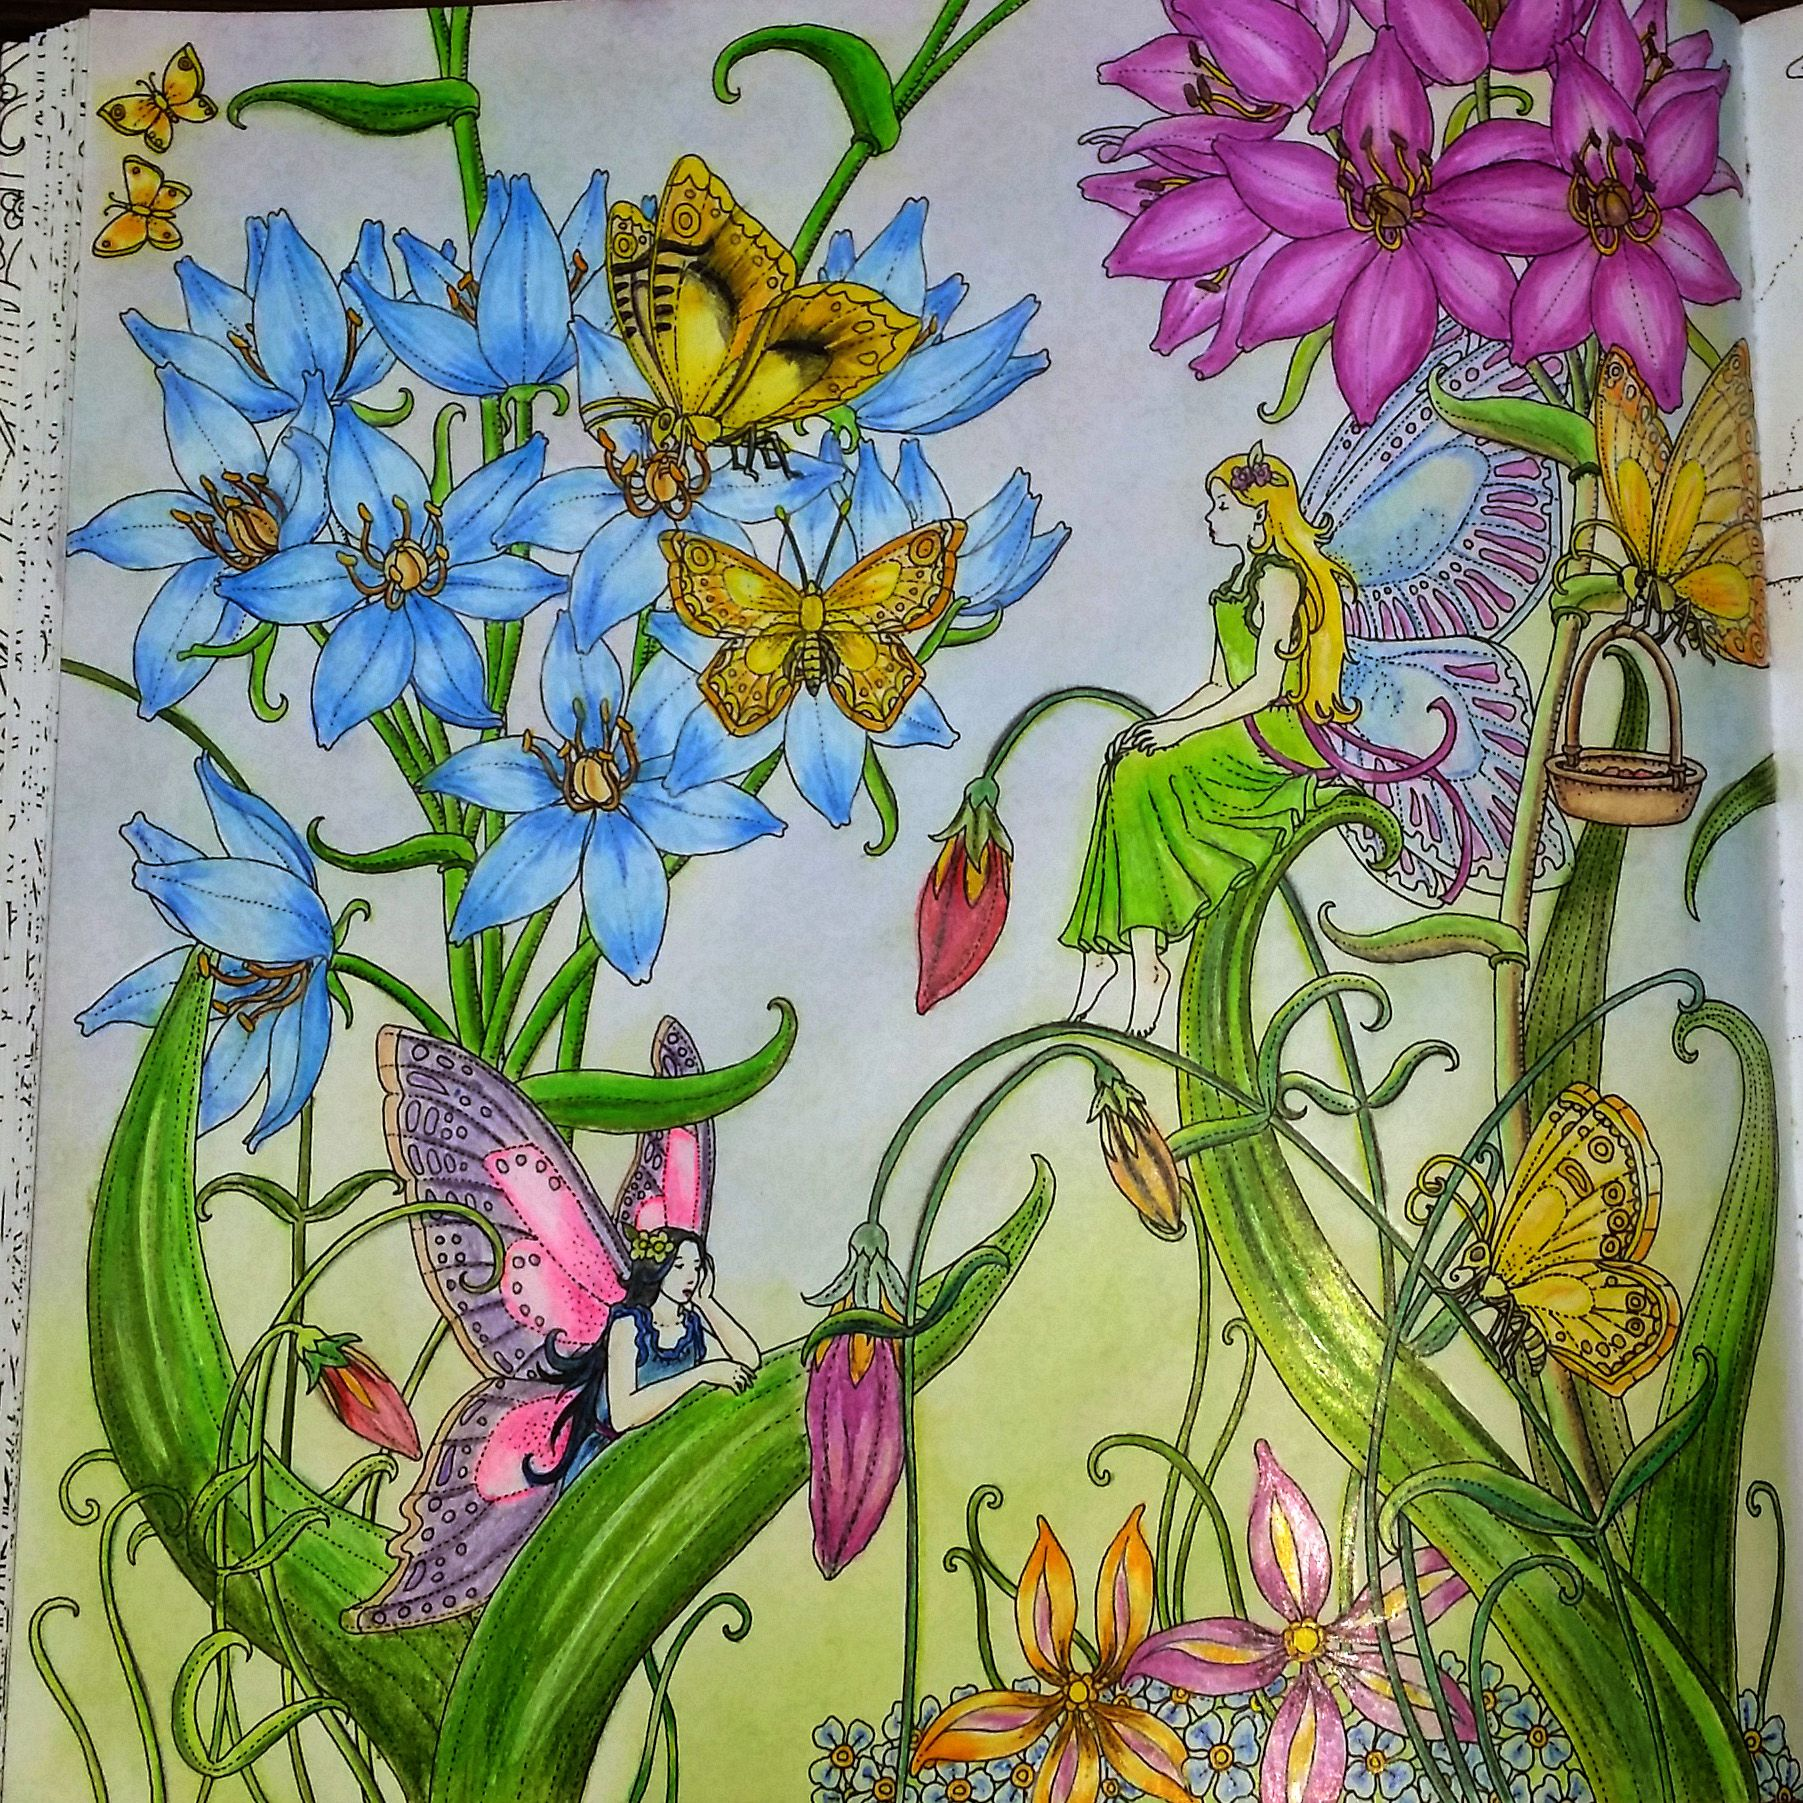 Coloring Book Zemlja Snova By Tomislav Tomic I Used Faber Castell